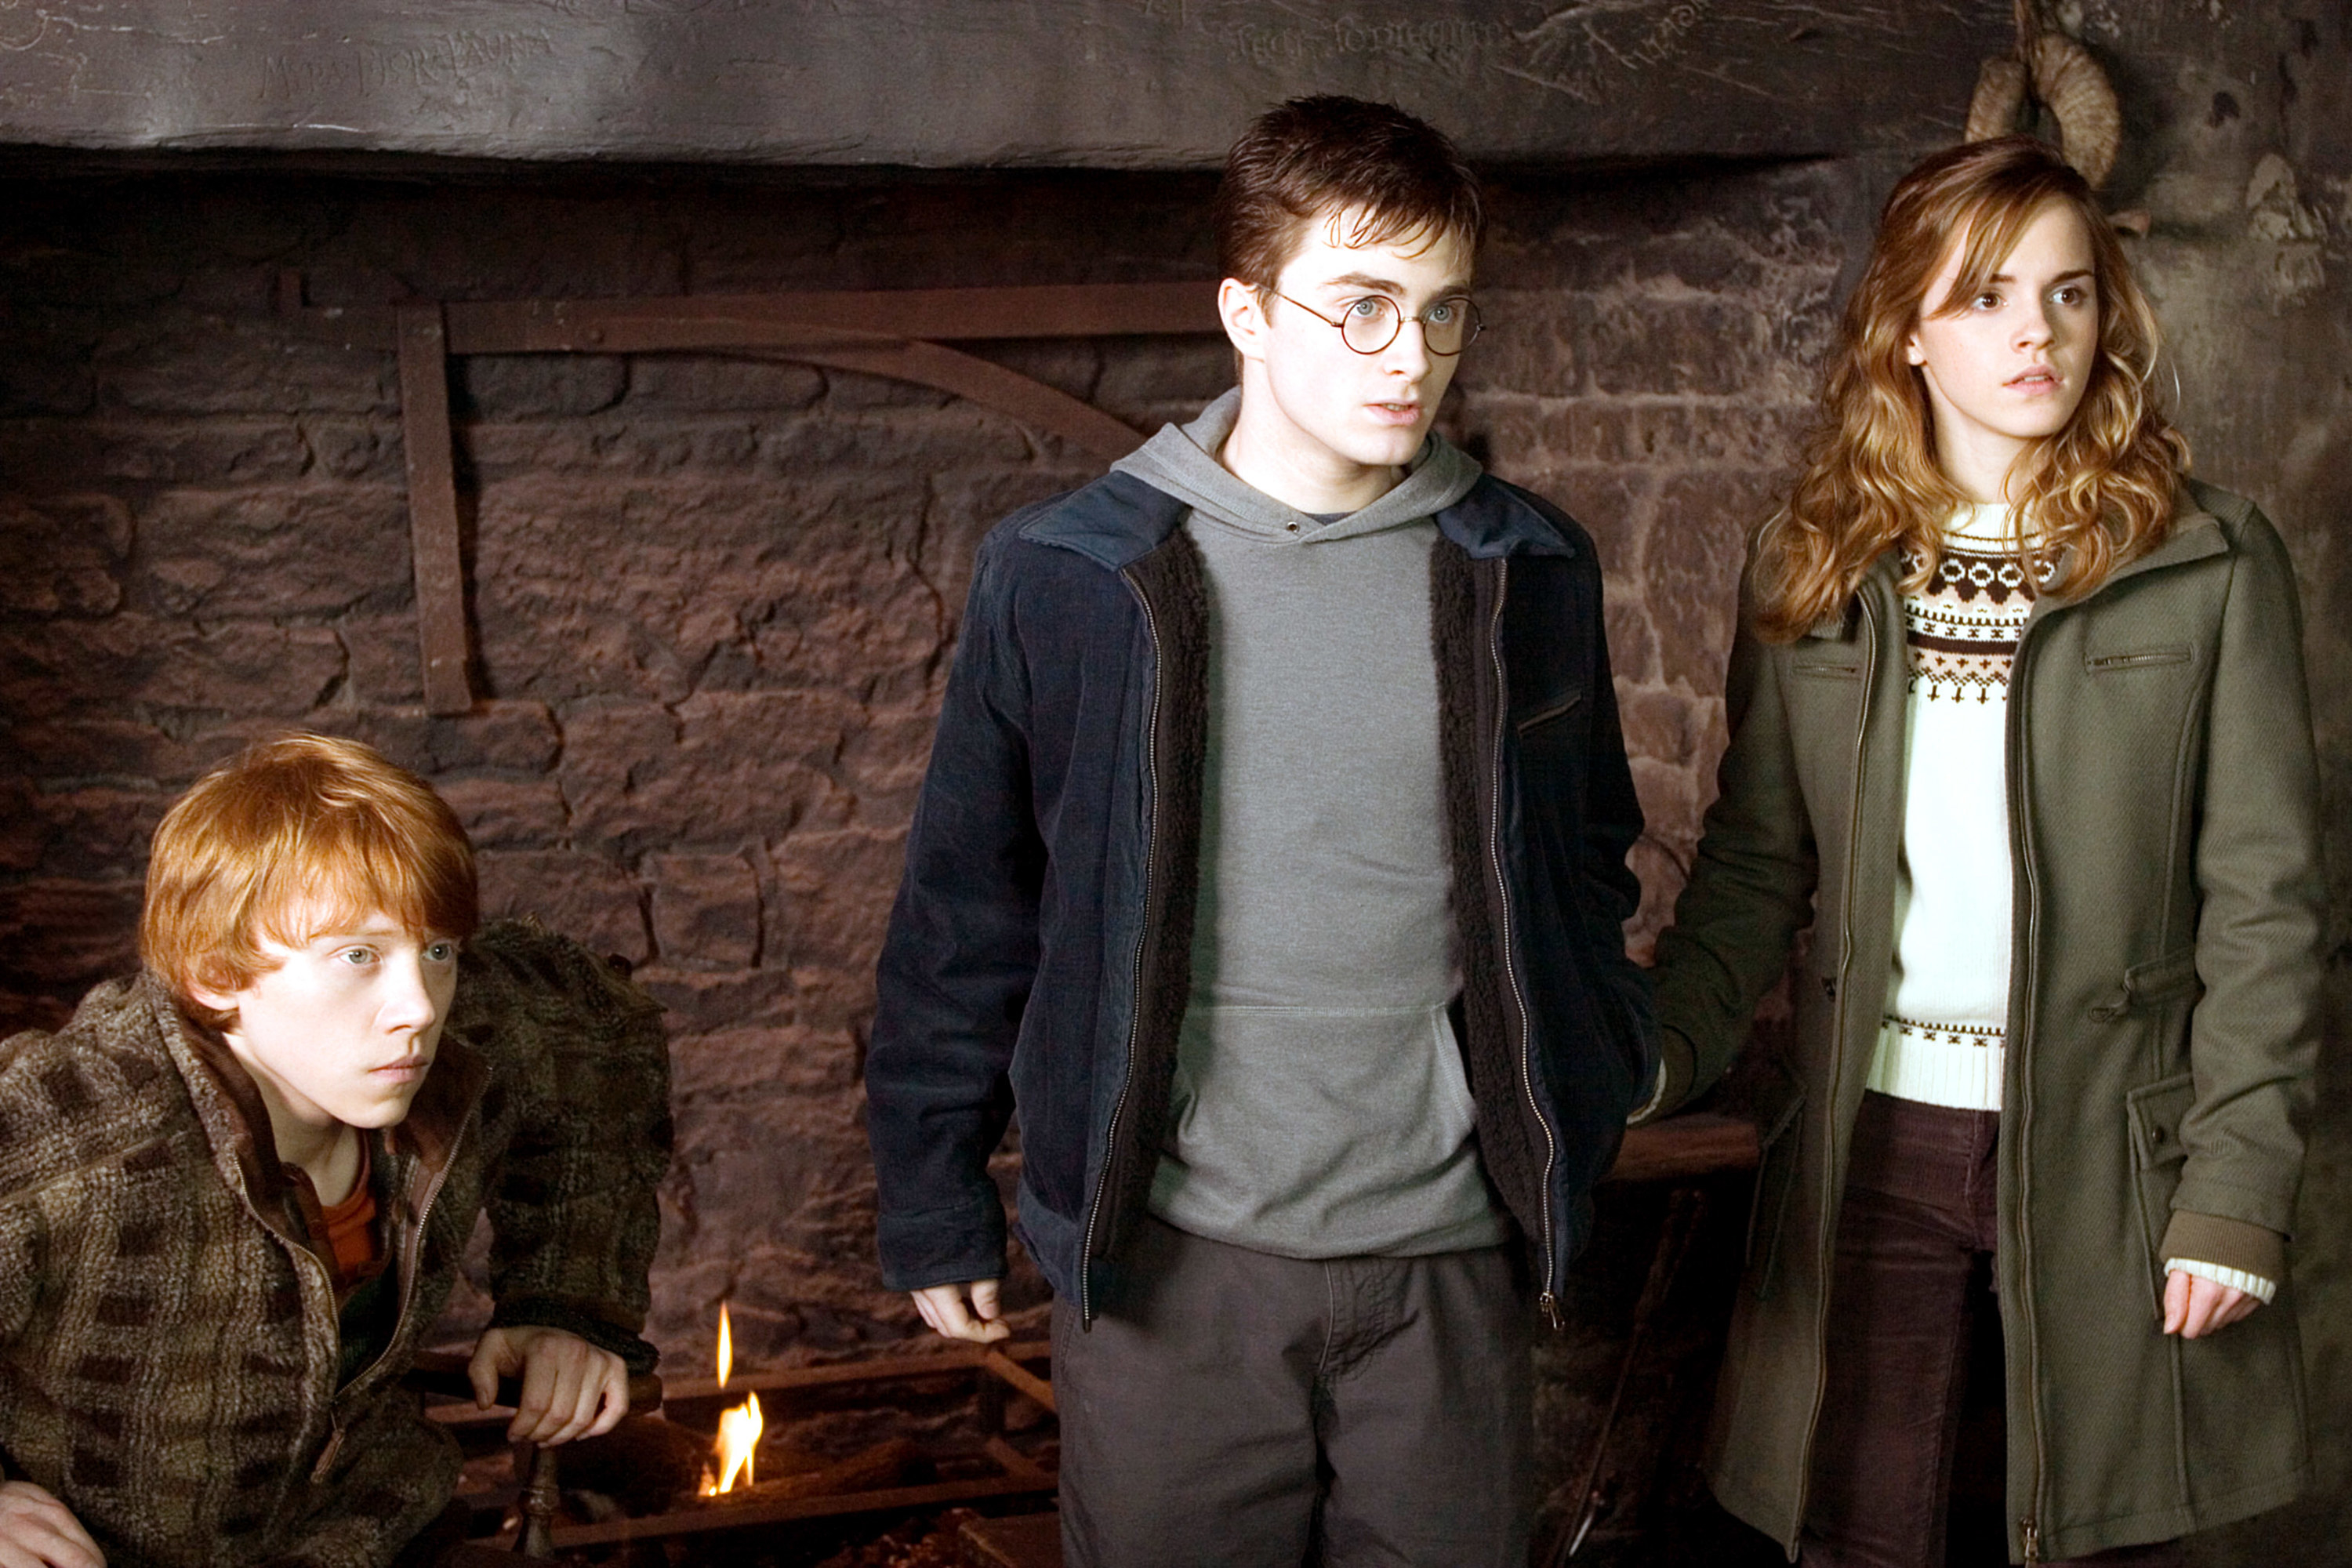 Harry, Hermione, and Ron stand and look in on in surprise